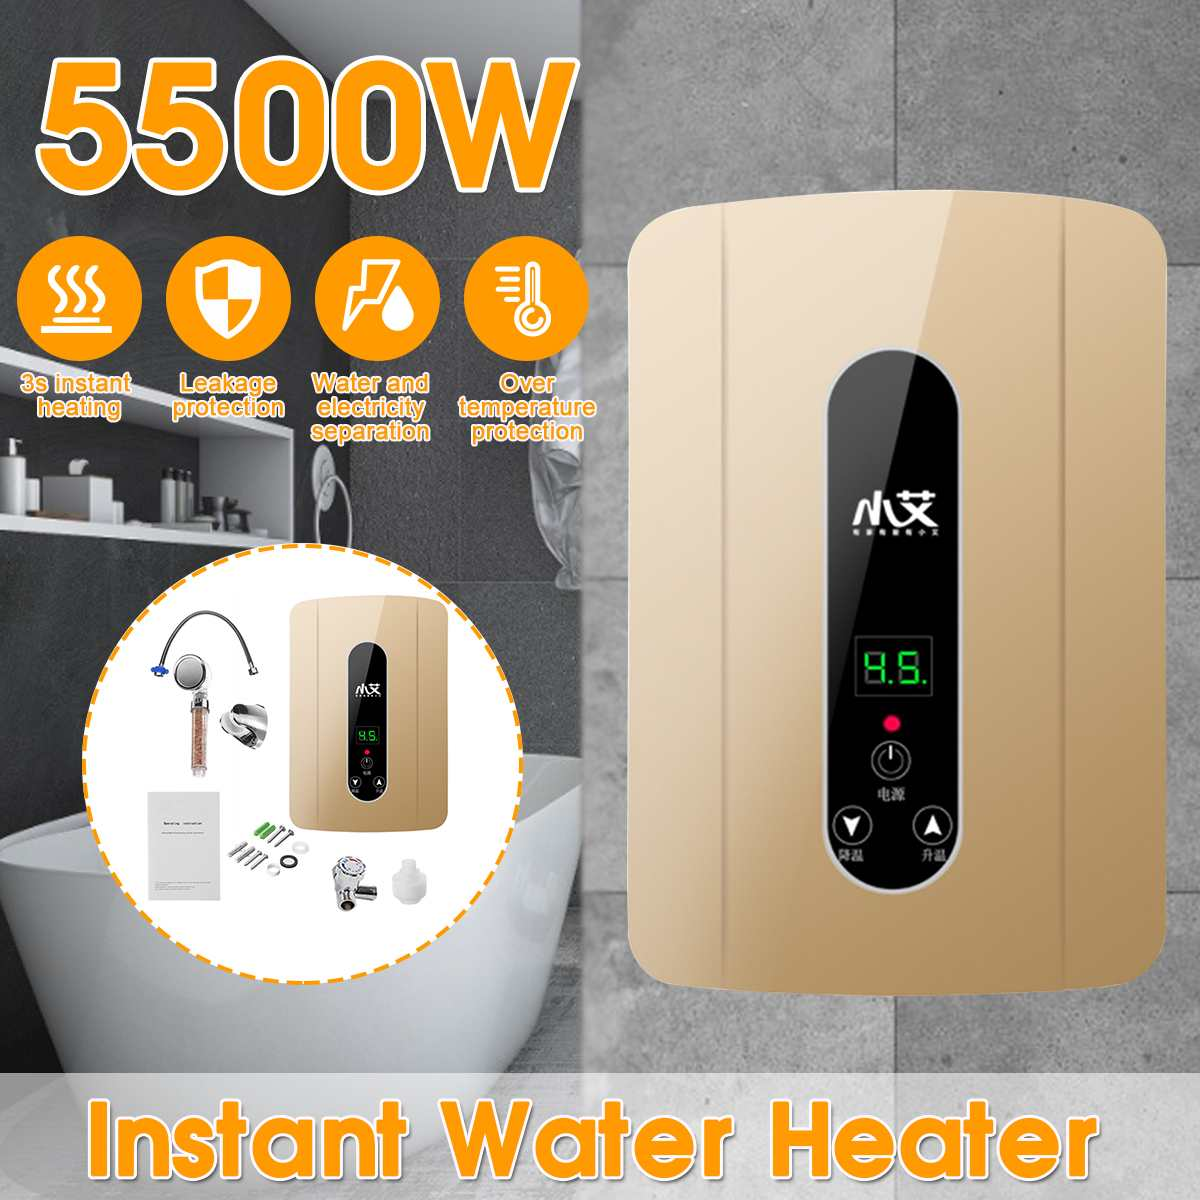 5500W Electric Water Heatin Instant Electric Tankless Water Heater Instantaneous Water Heater Instant Fast 3 Seconds Hot Shower